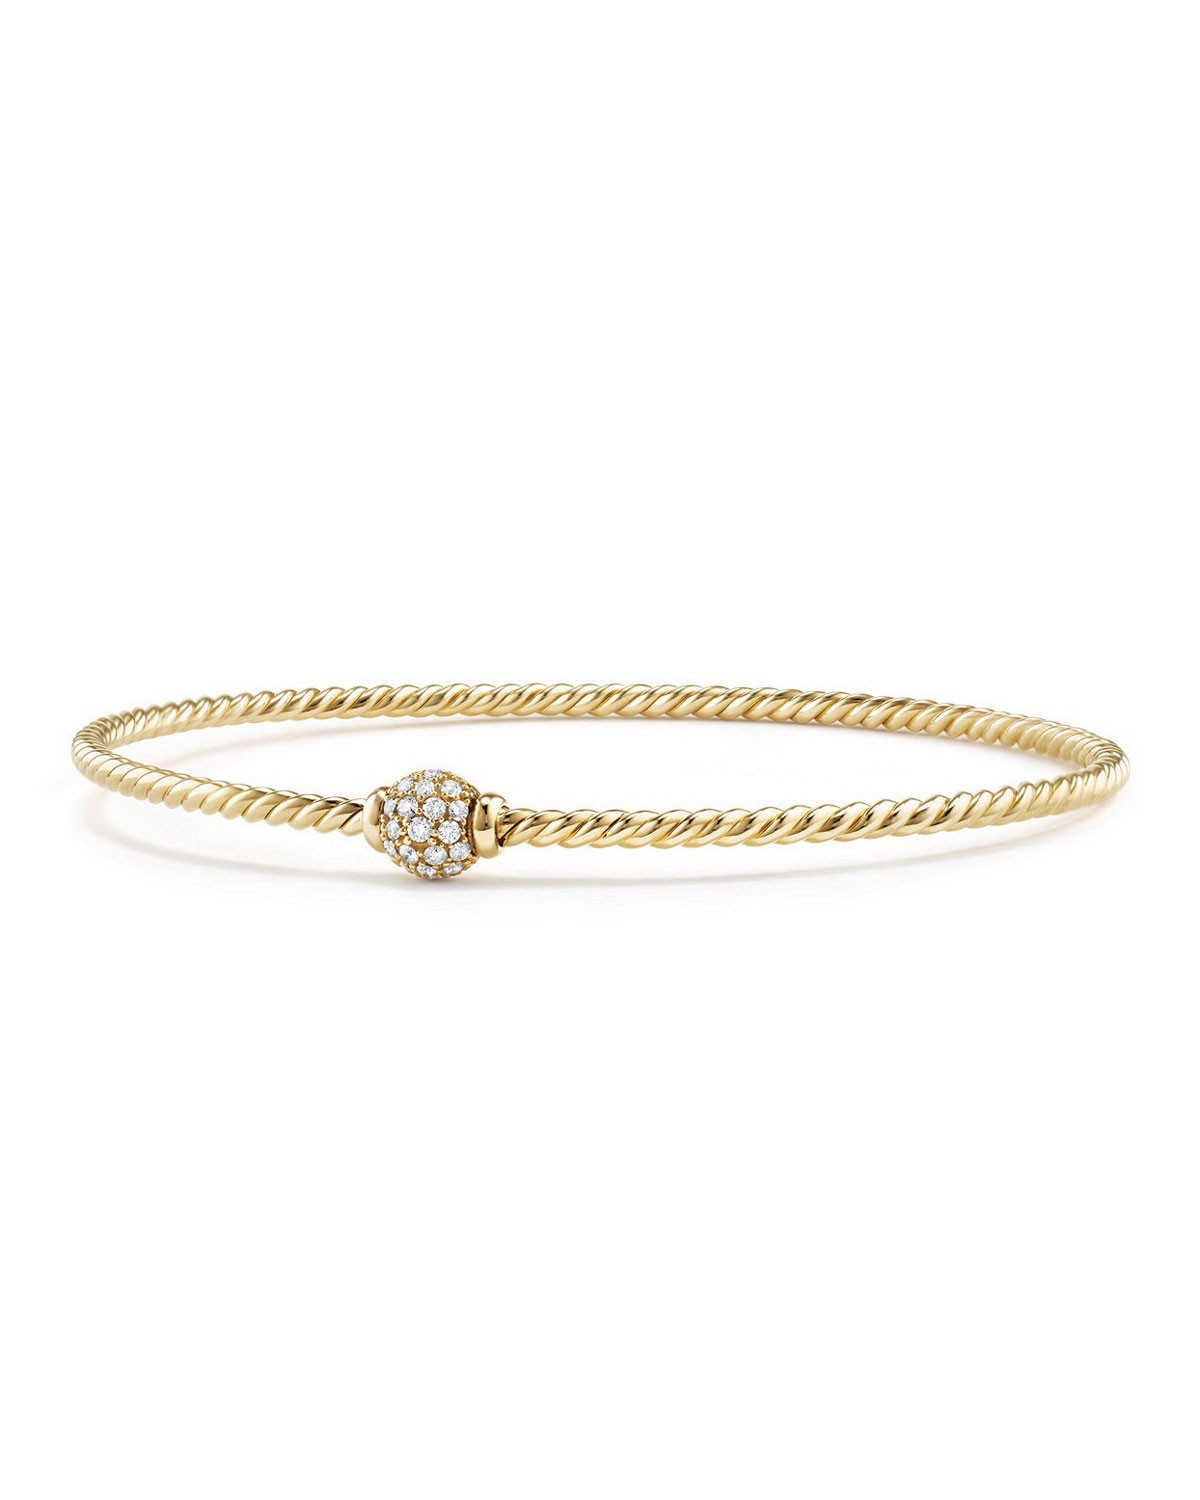 David Yurman Petite Solari Diamond Single Station Bracelet, Size M